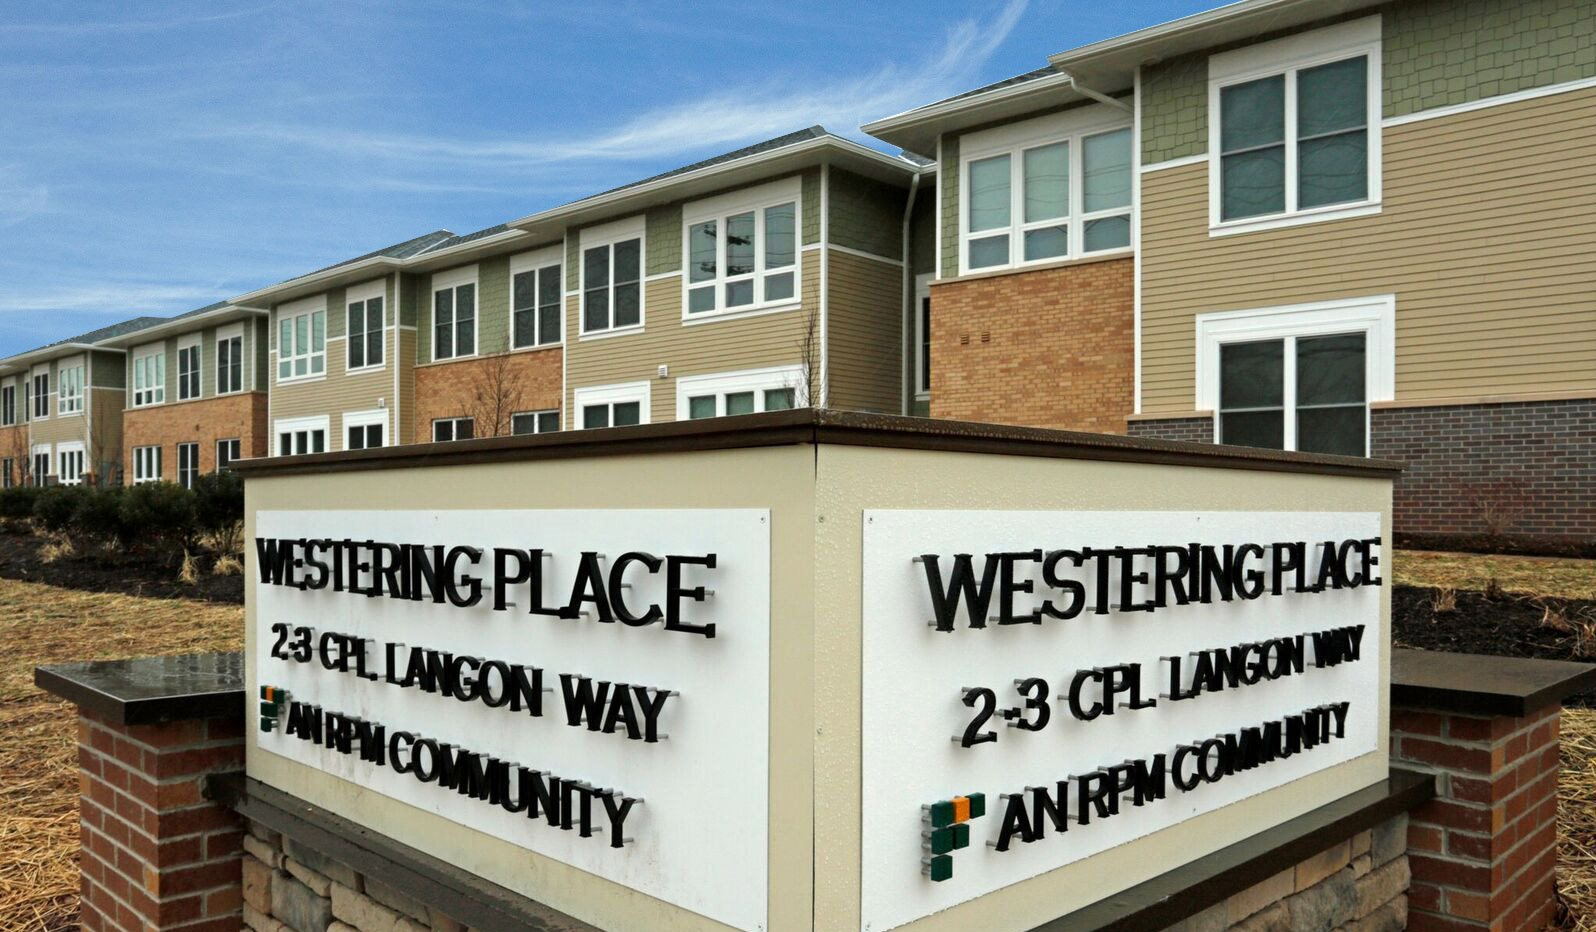 Image of Westering Place in Hillsborough, New Jersey